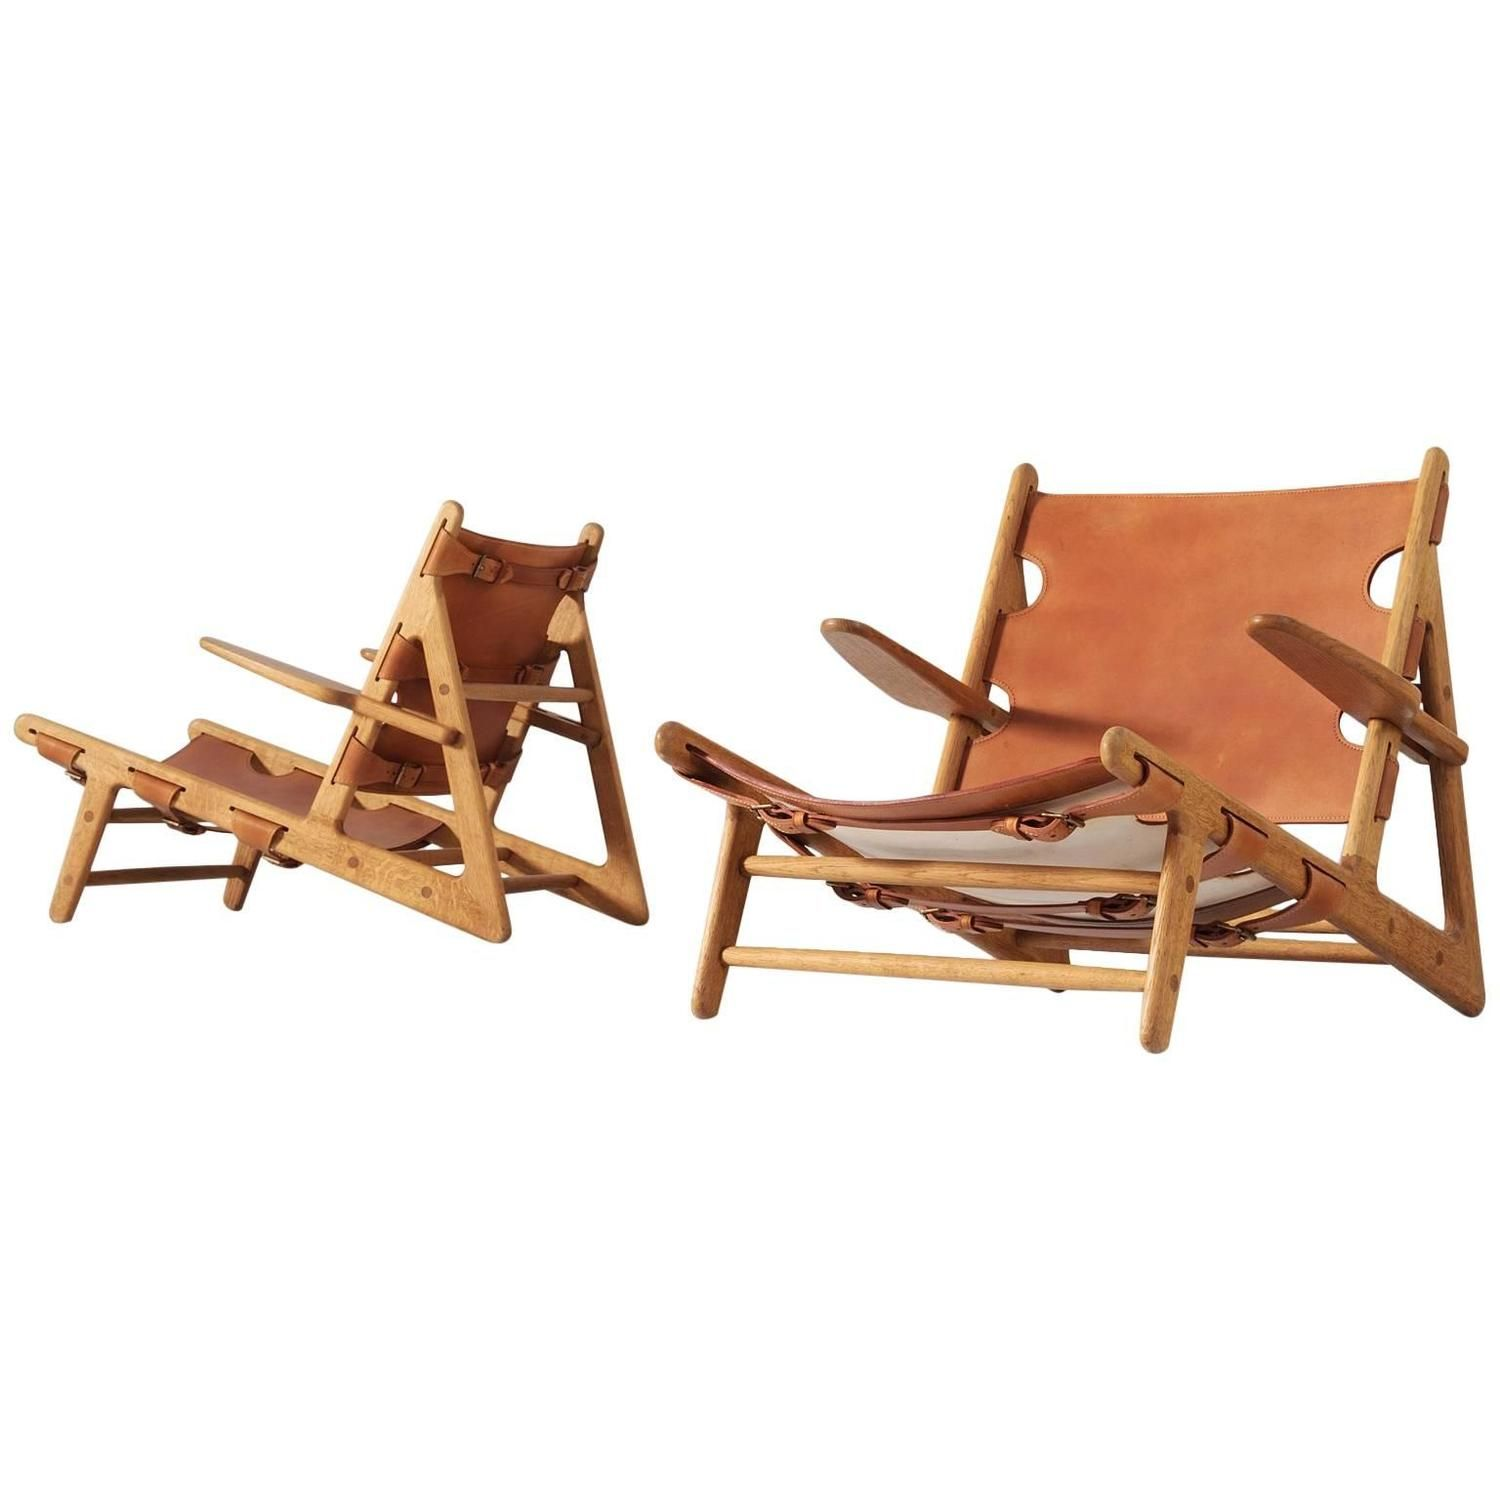 B¸rge Mogensen Pair of Hunting Chairs